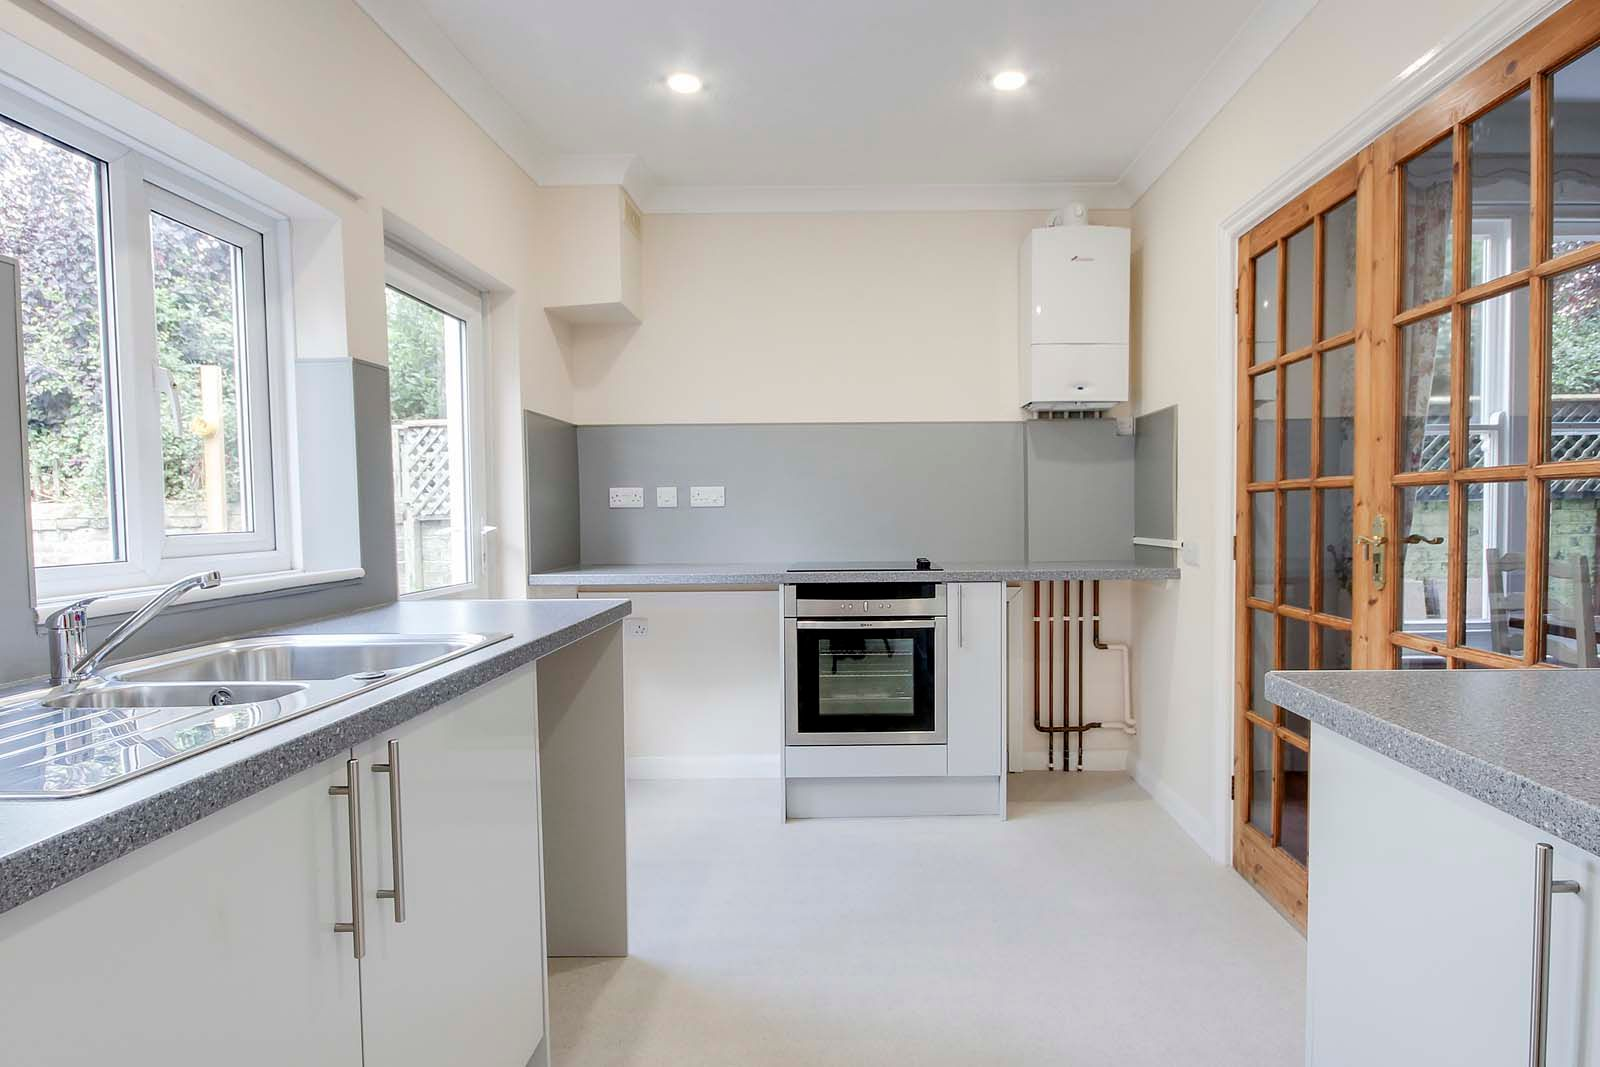 2 bed Apartment to rent in Worthing - Kitchen (Property Image 1)